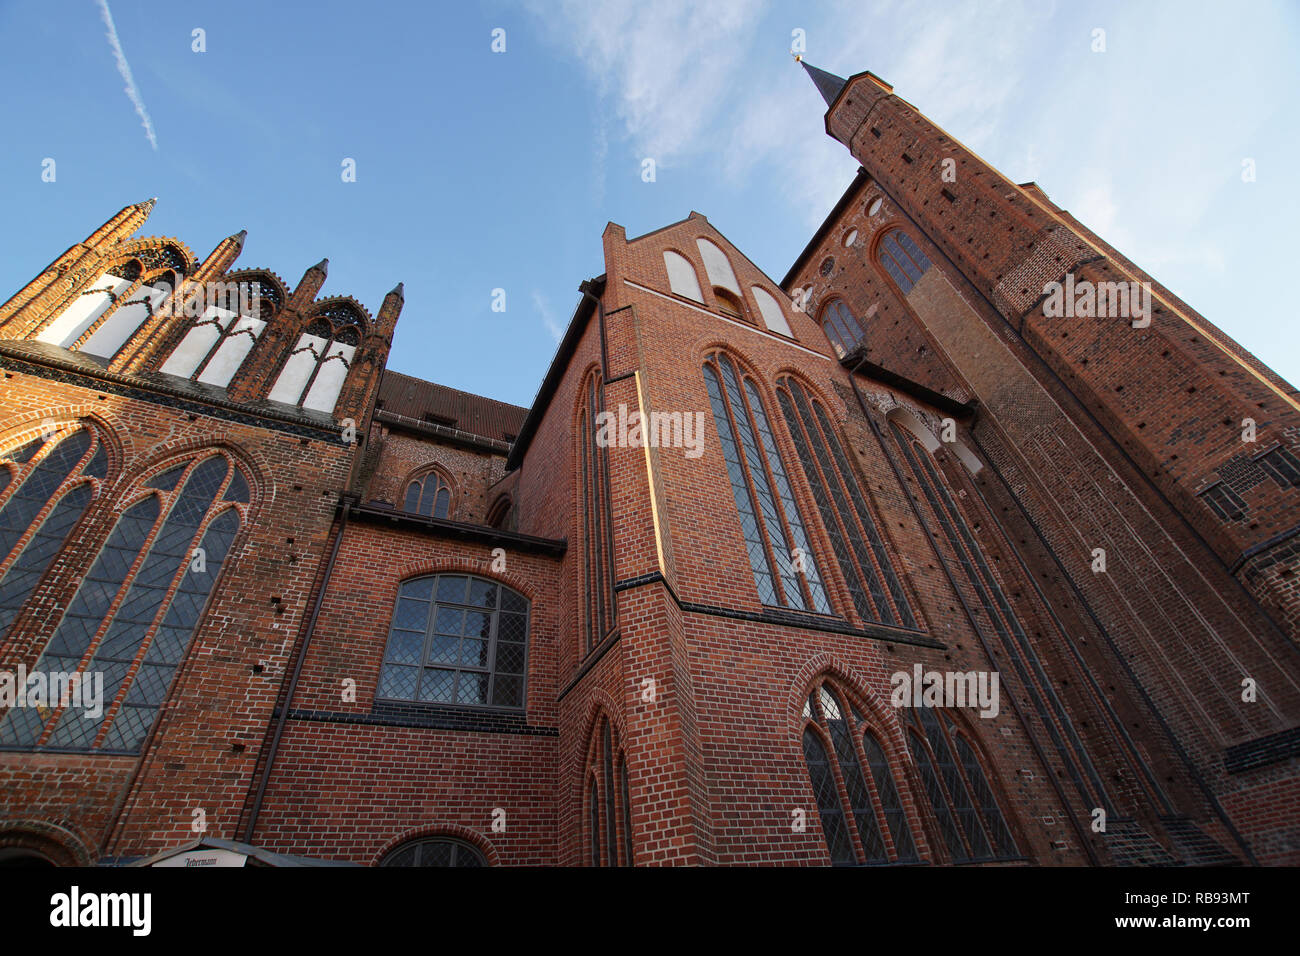 St. Georgen church in Wismar - Stock Image